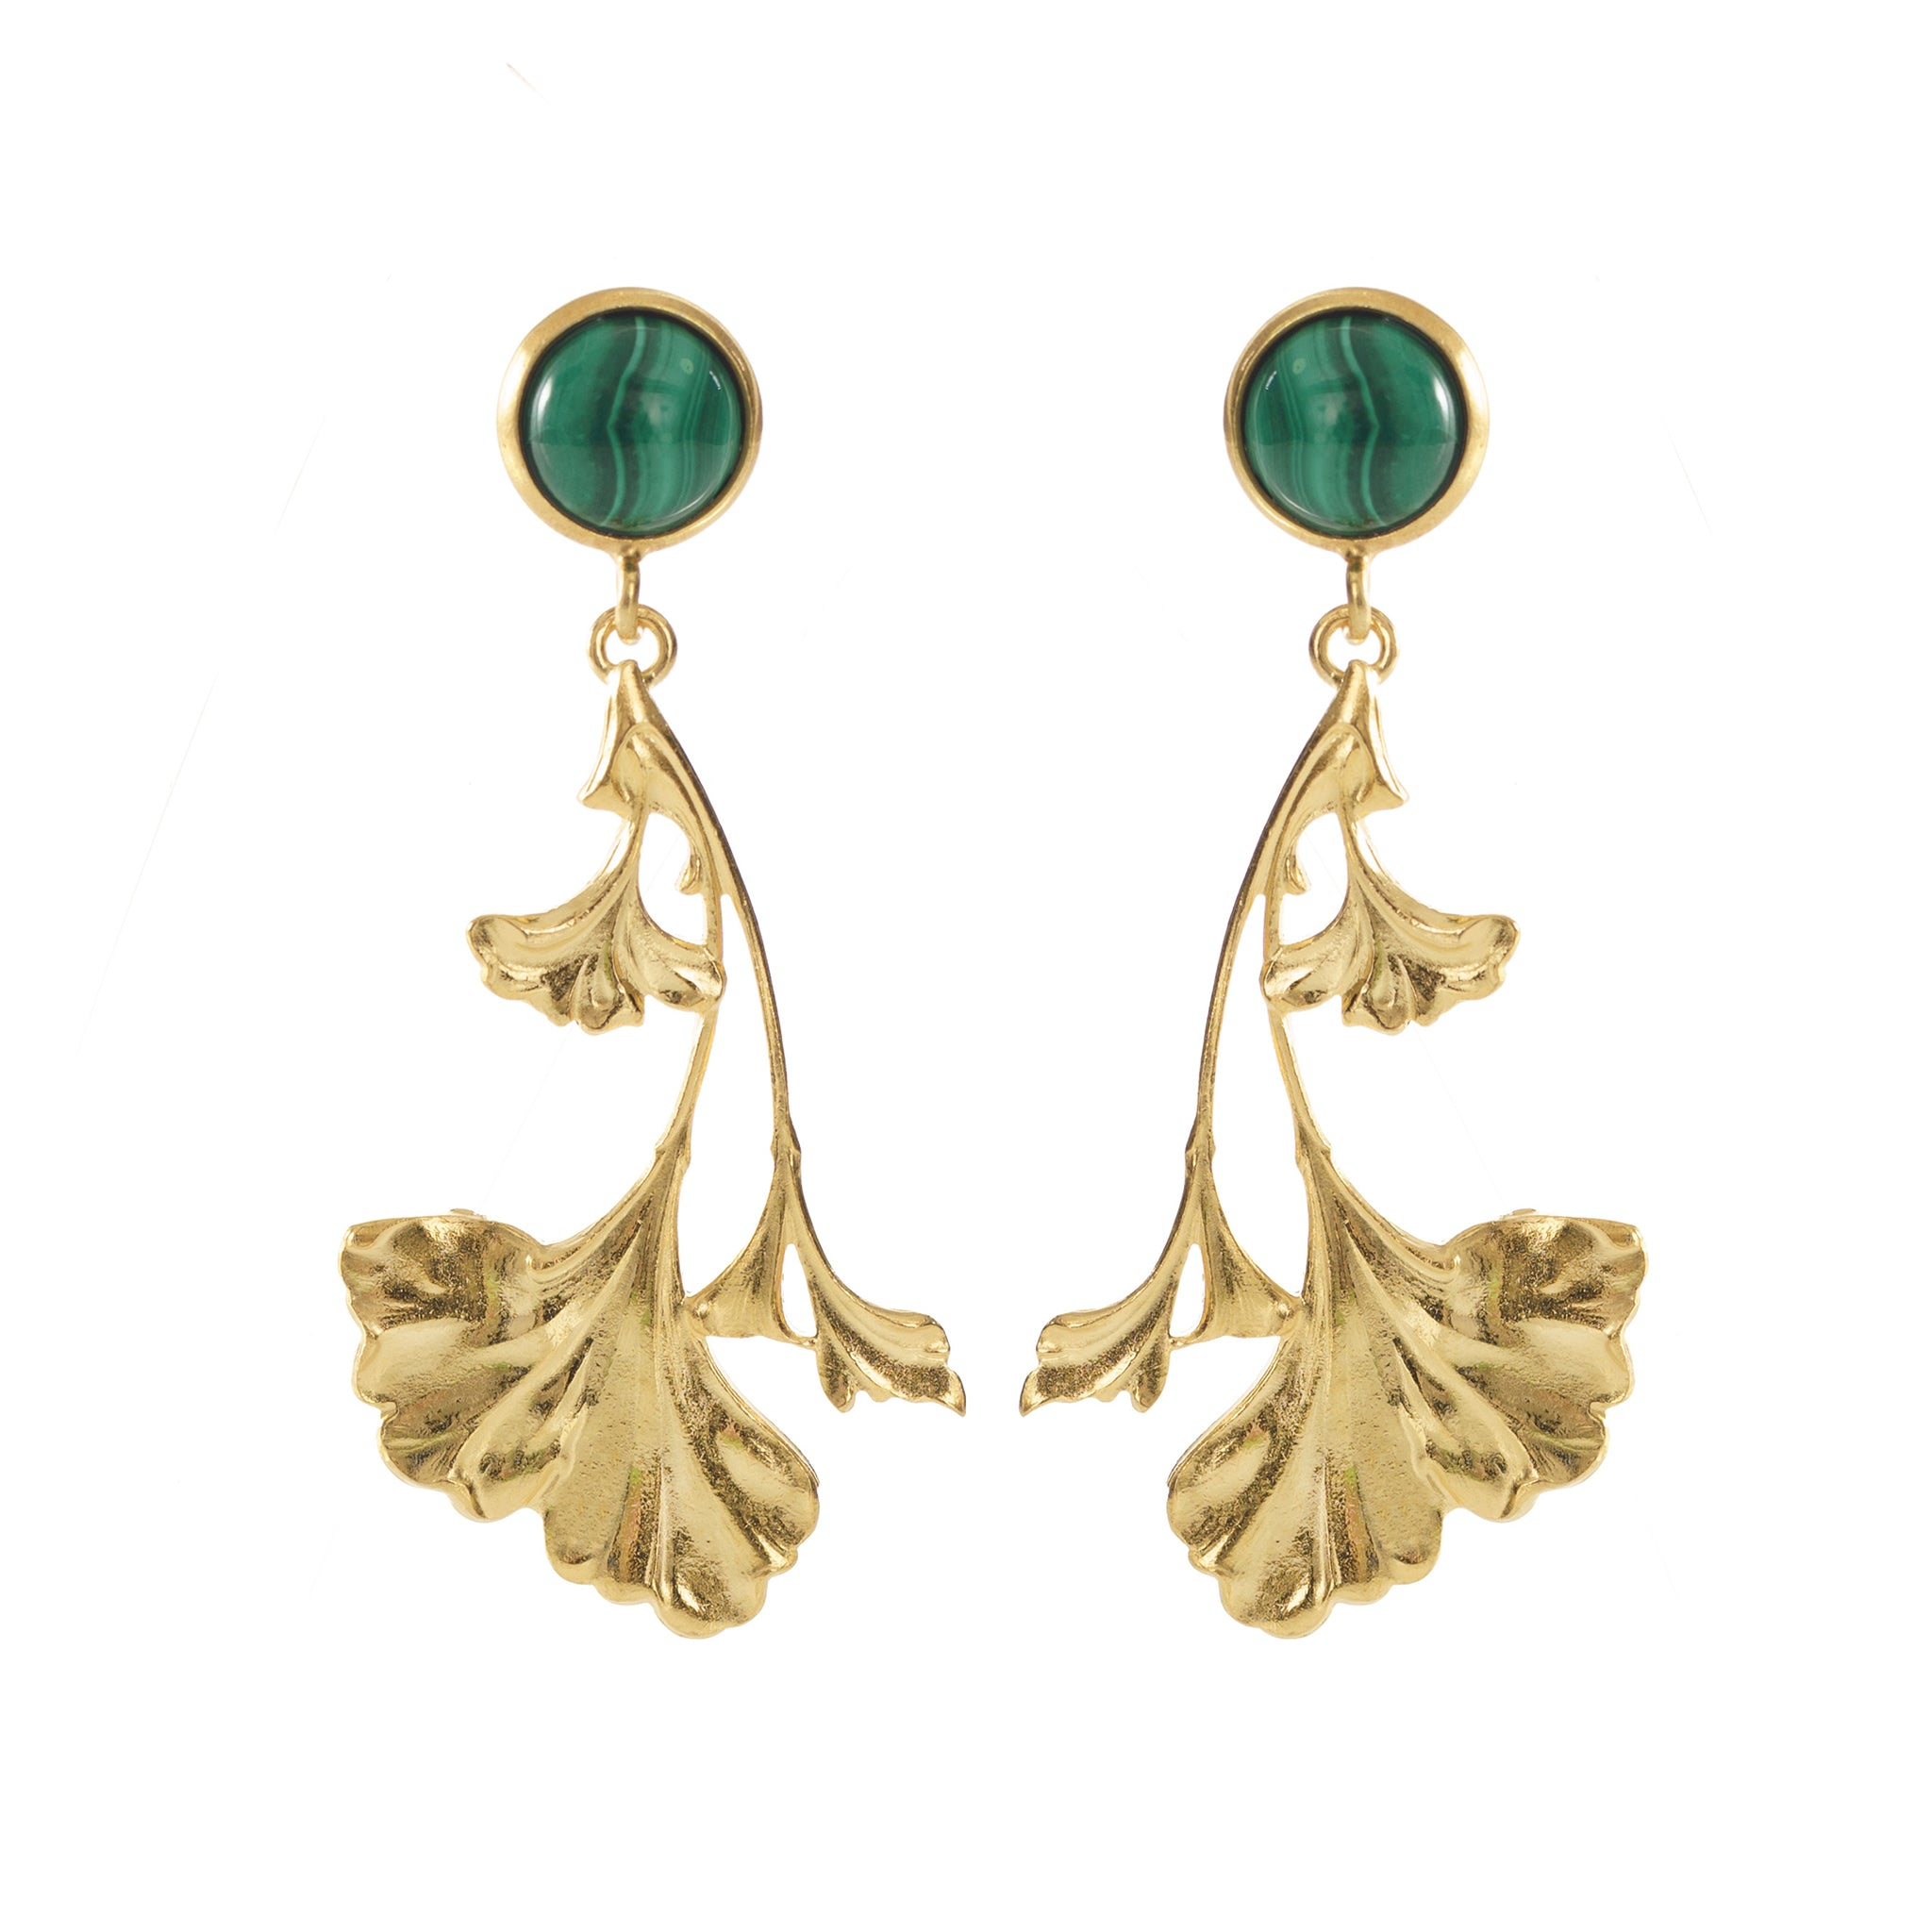 DAHLIA Earrings Gold-Plated with a Malachite cabochon